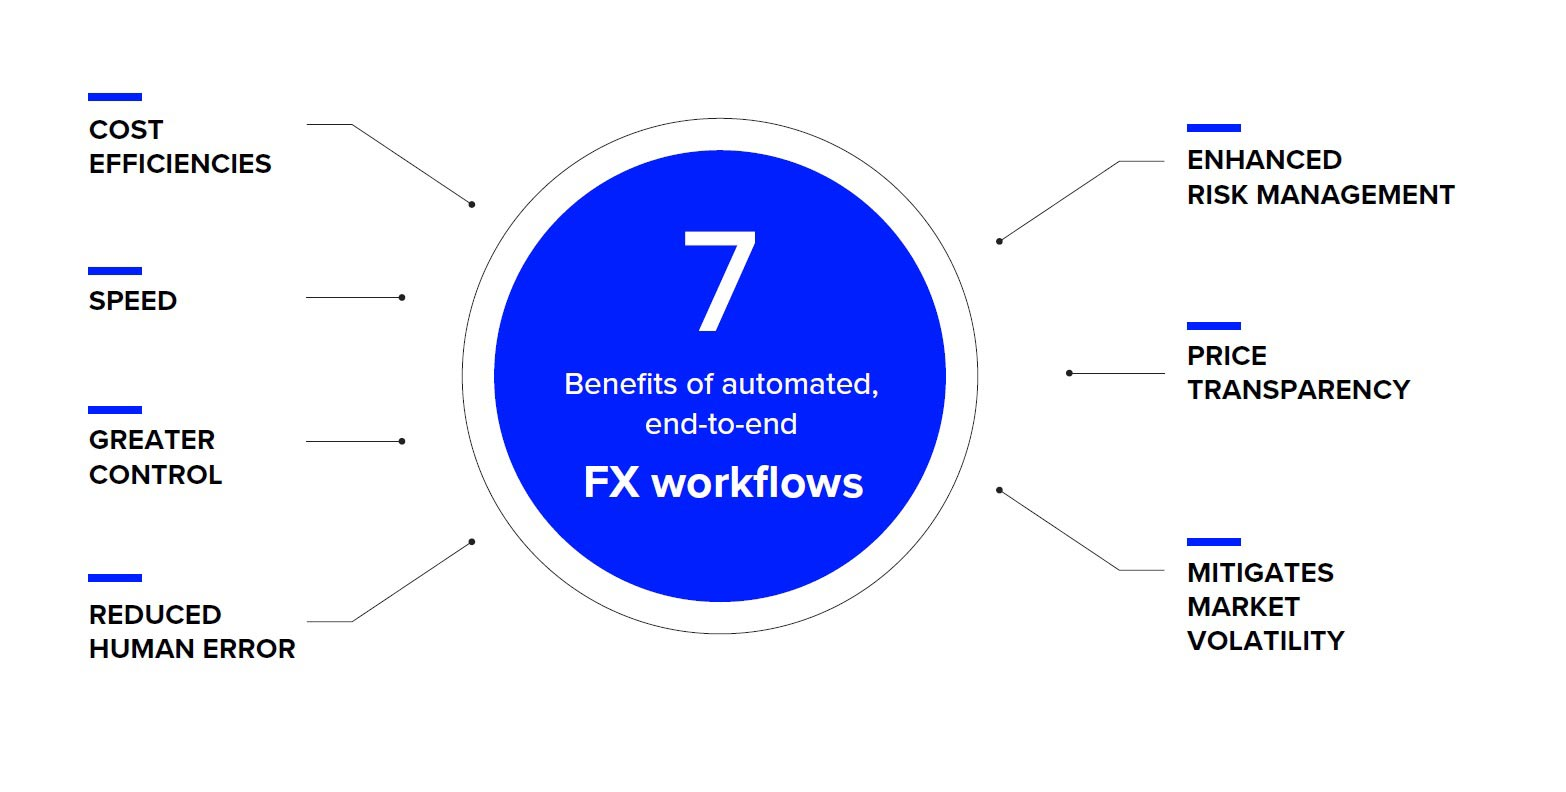 7 benefits of automated end to end FX workflows